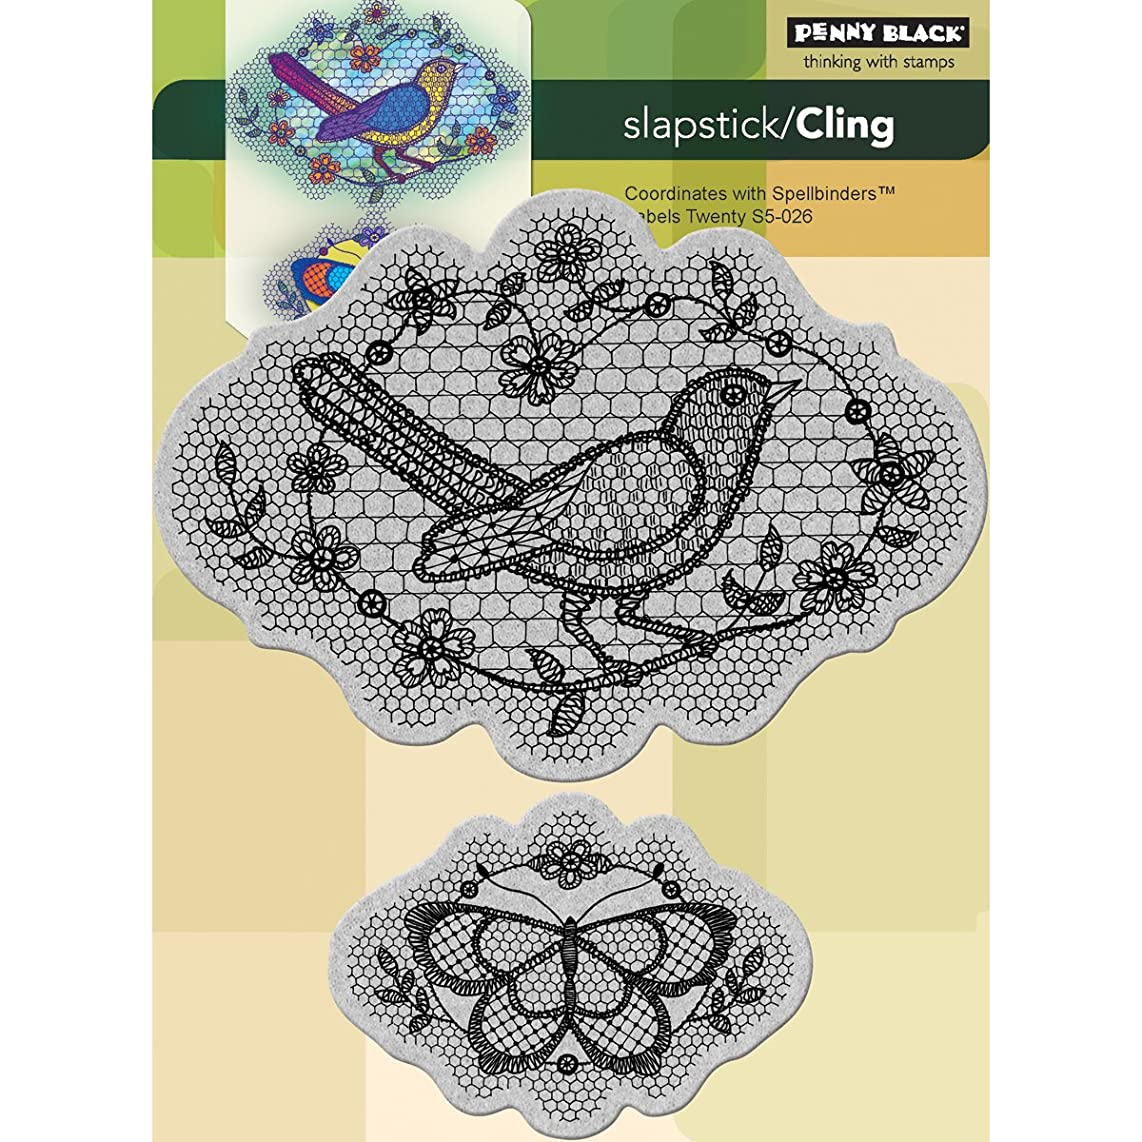 Penny Black 40-139 A Flight of Thread Cling Rubber Stamp